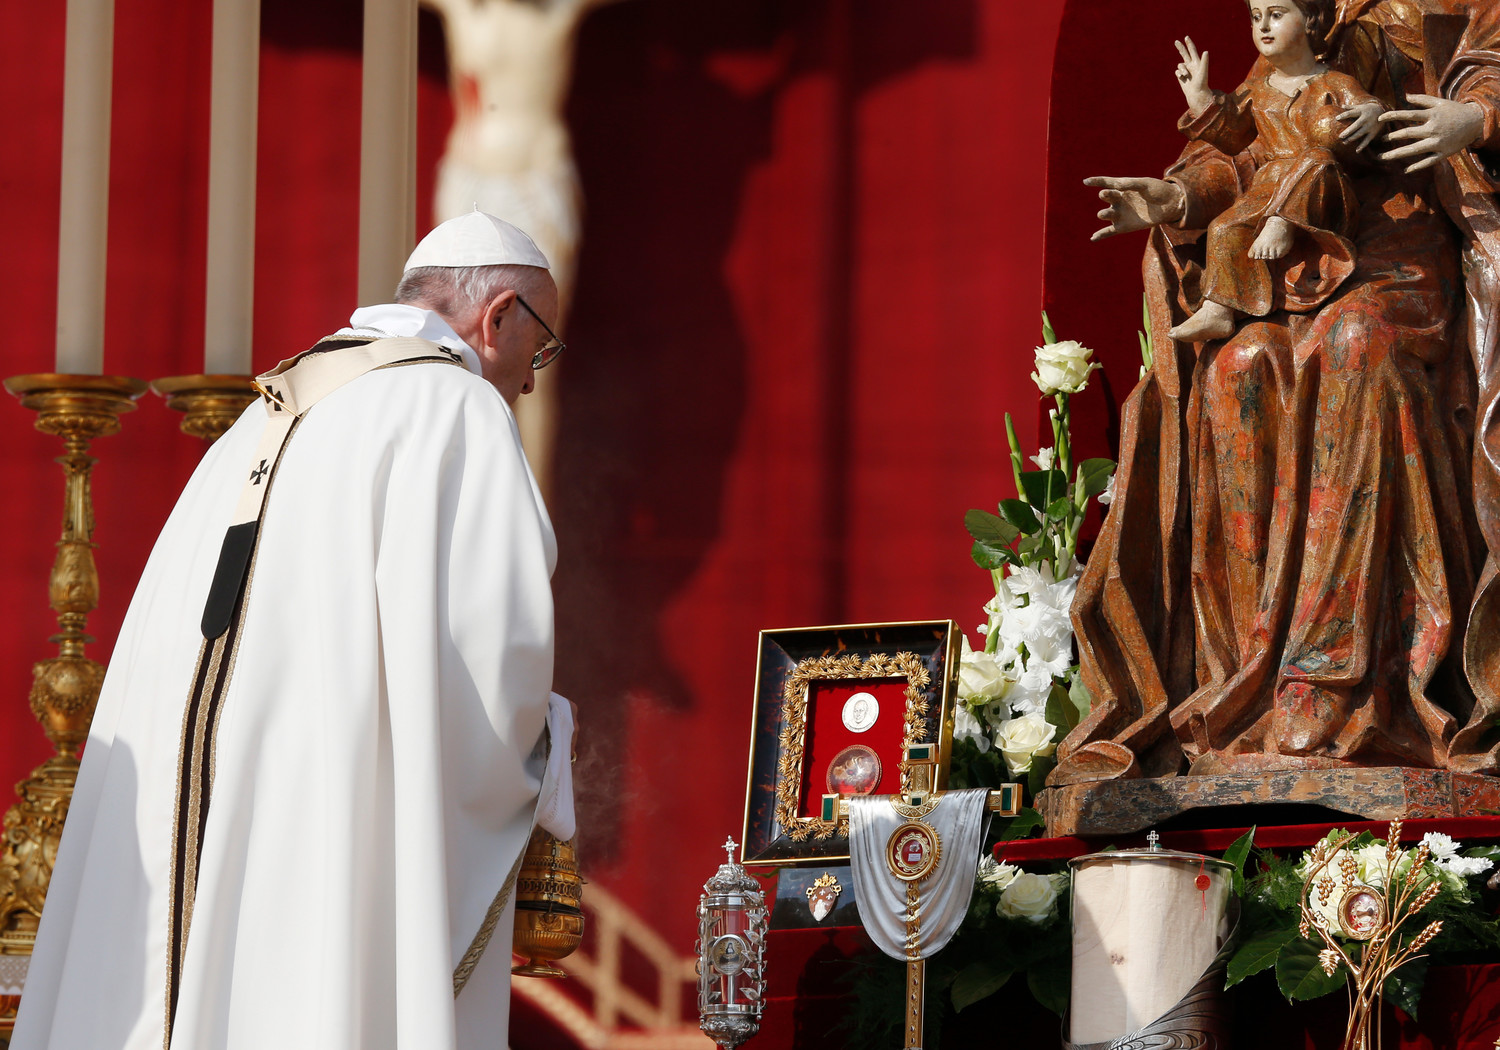 Pope Francis uses incense to venerate relics as he celebrates the canonization Mass for seven new saints in St. Peter's Square at the Vatican Oct. 14. Among the new saints are Pope St. Paul VI and St. Oscar Romero.